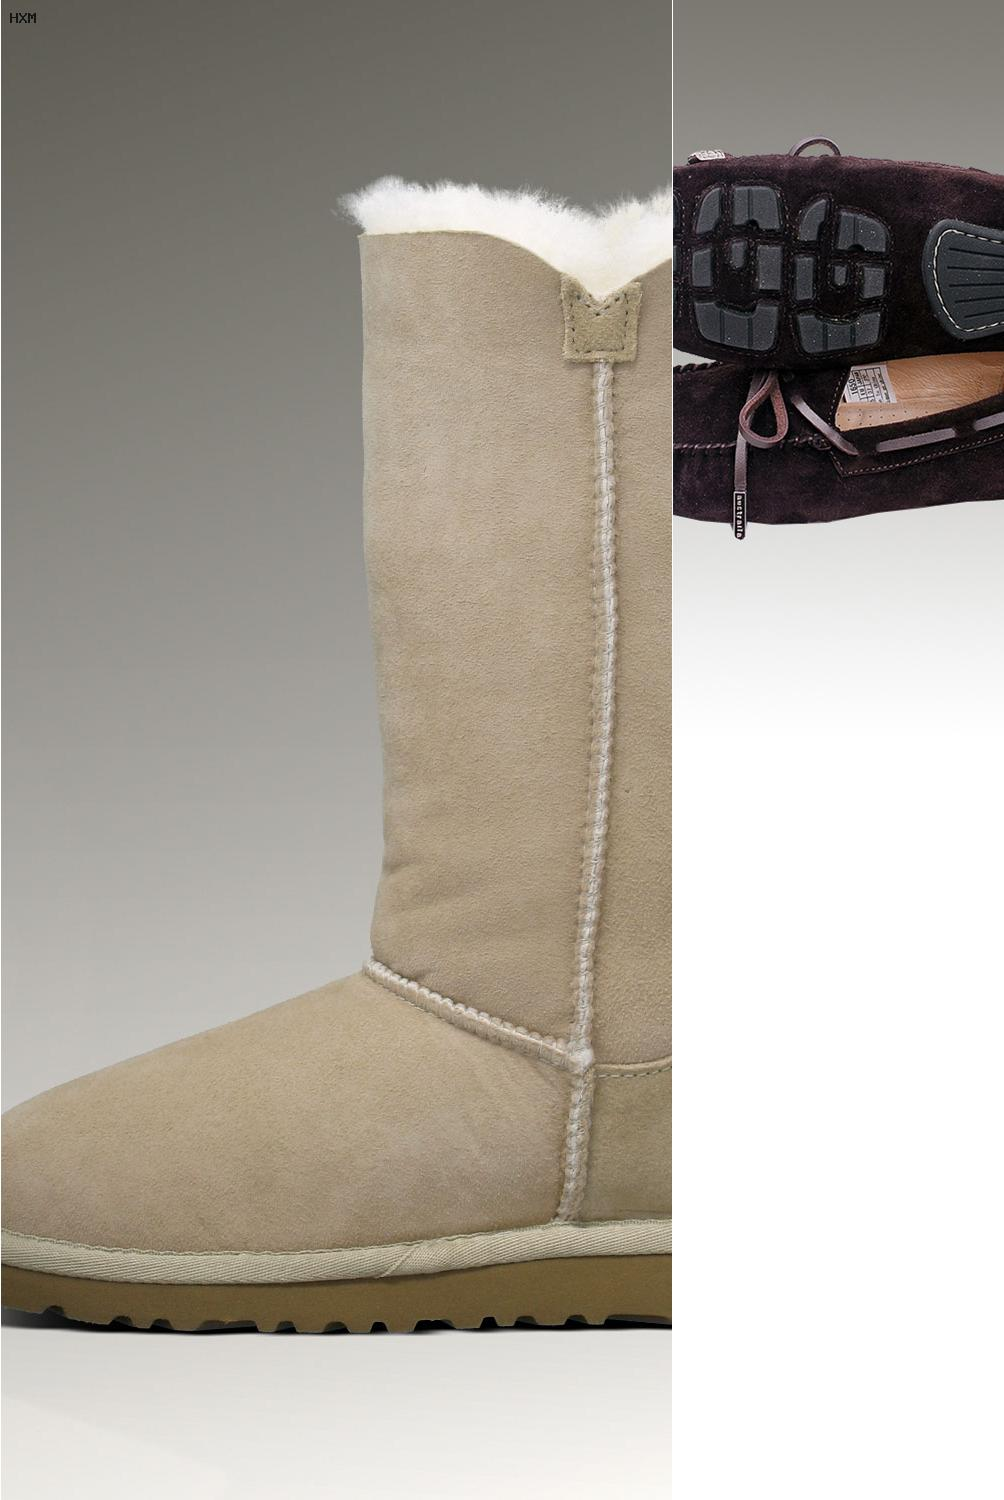 vraies ou fausses ugg